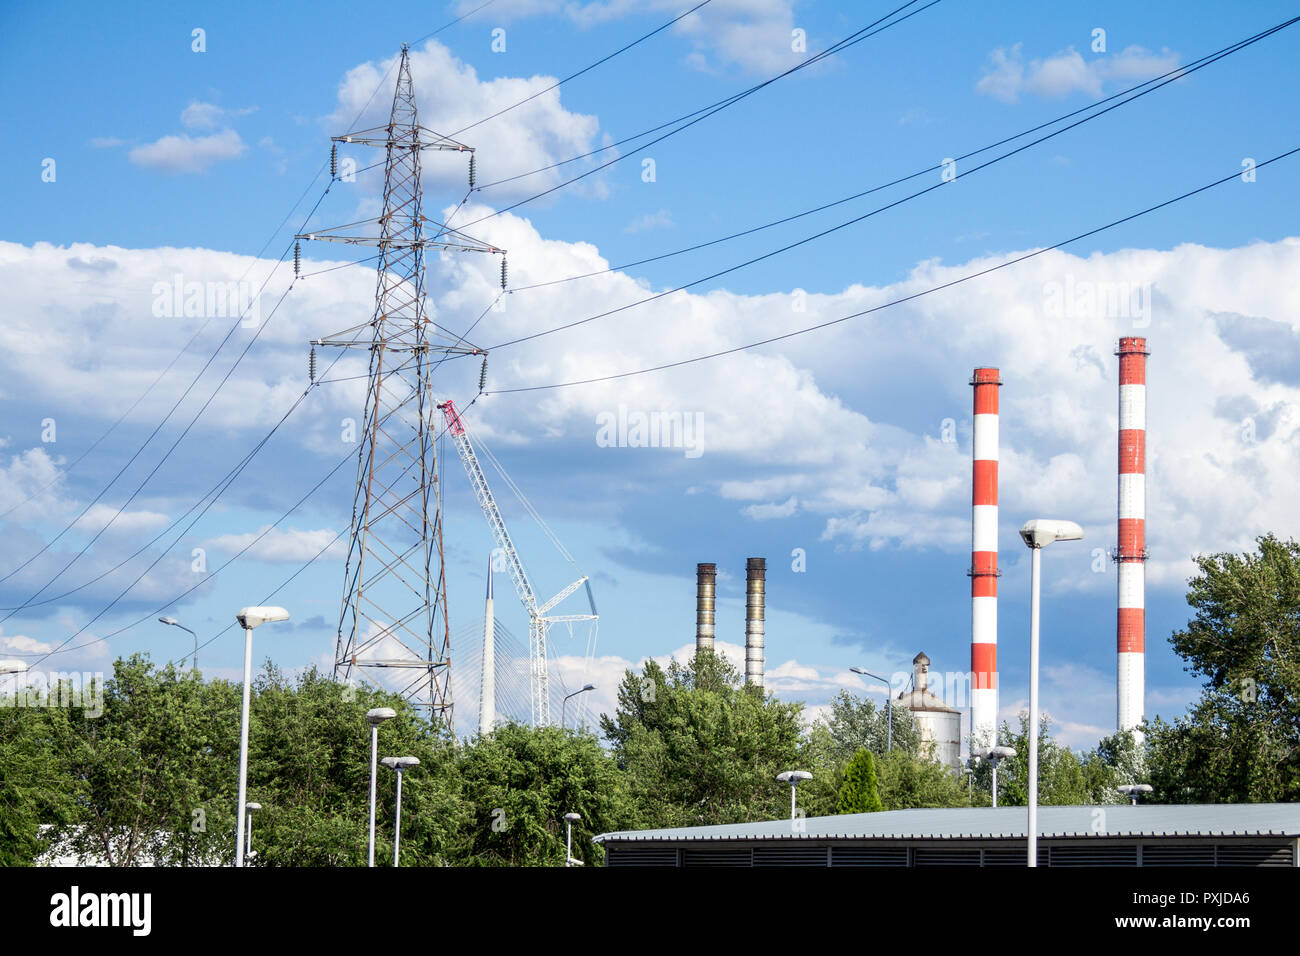 Industrial landscape of Eastern Europe, with transmission towers, pylons, power towers, factories and chimneys, taken during a sunny afternoon  Pictur - Stock Image